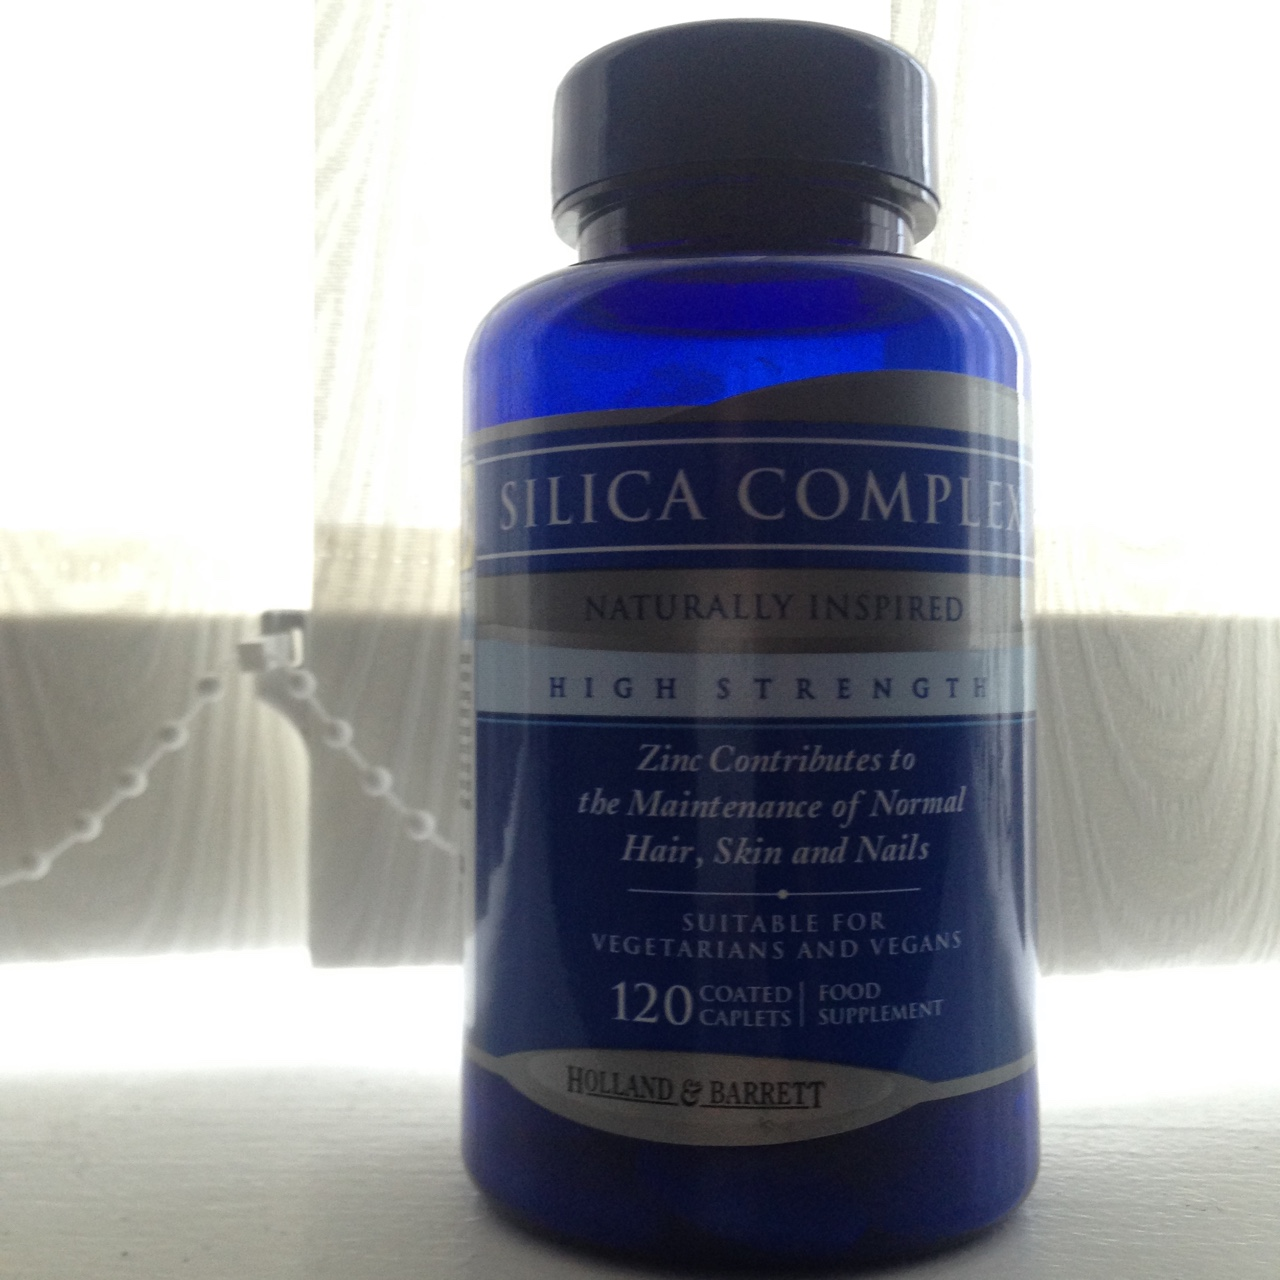 Silica complex supplements from Holland and Barrett,    - Depop